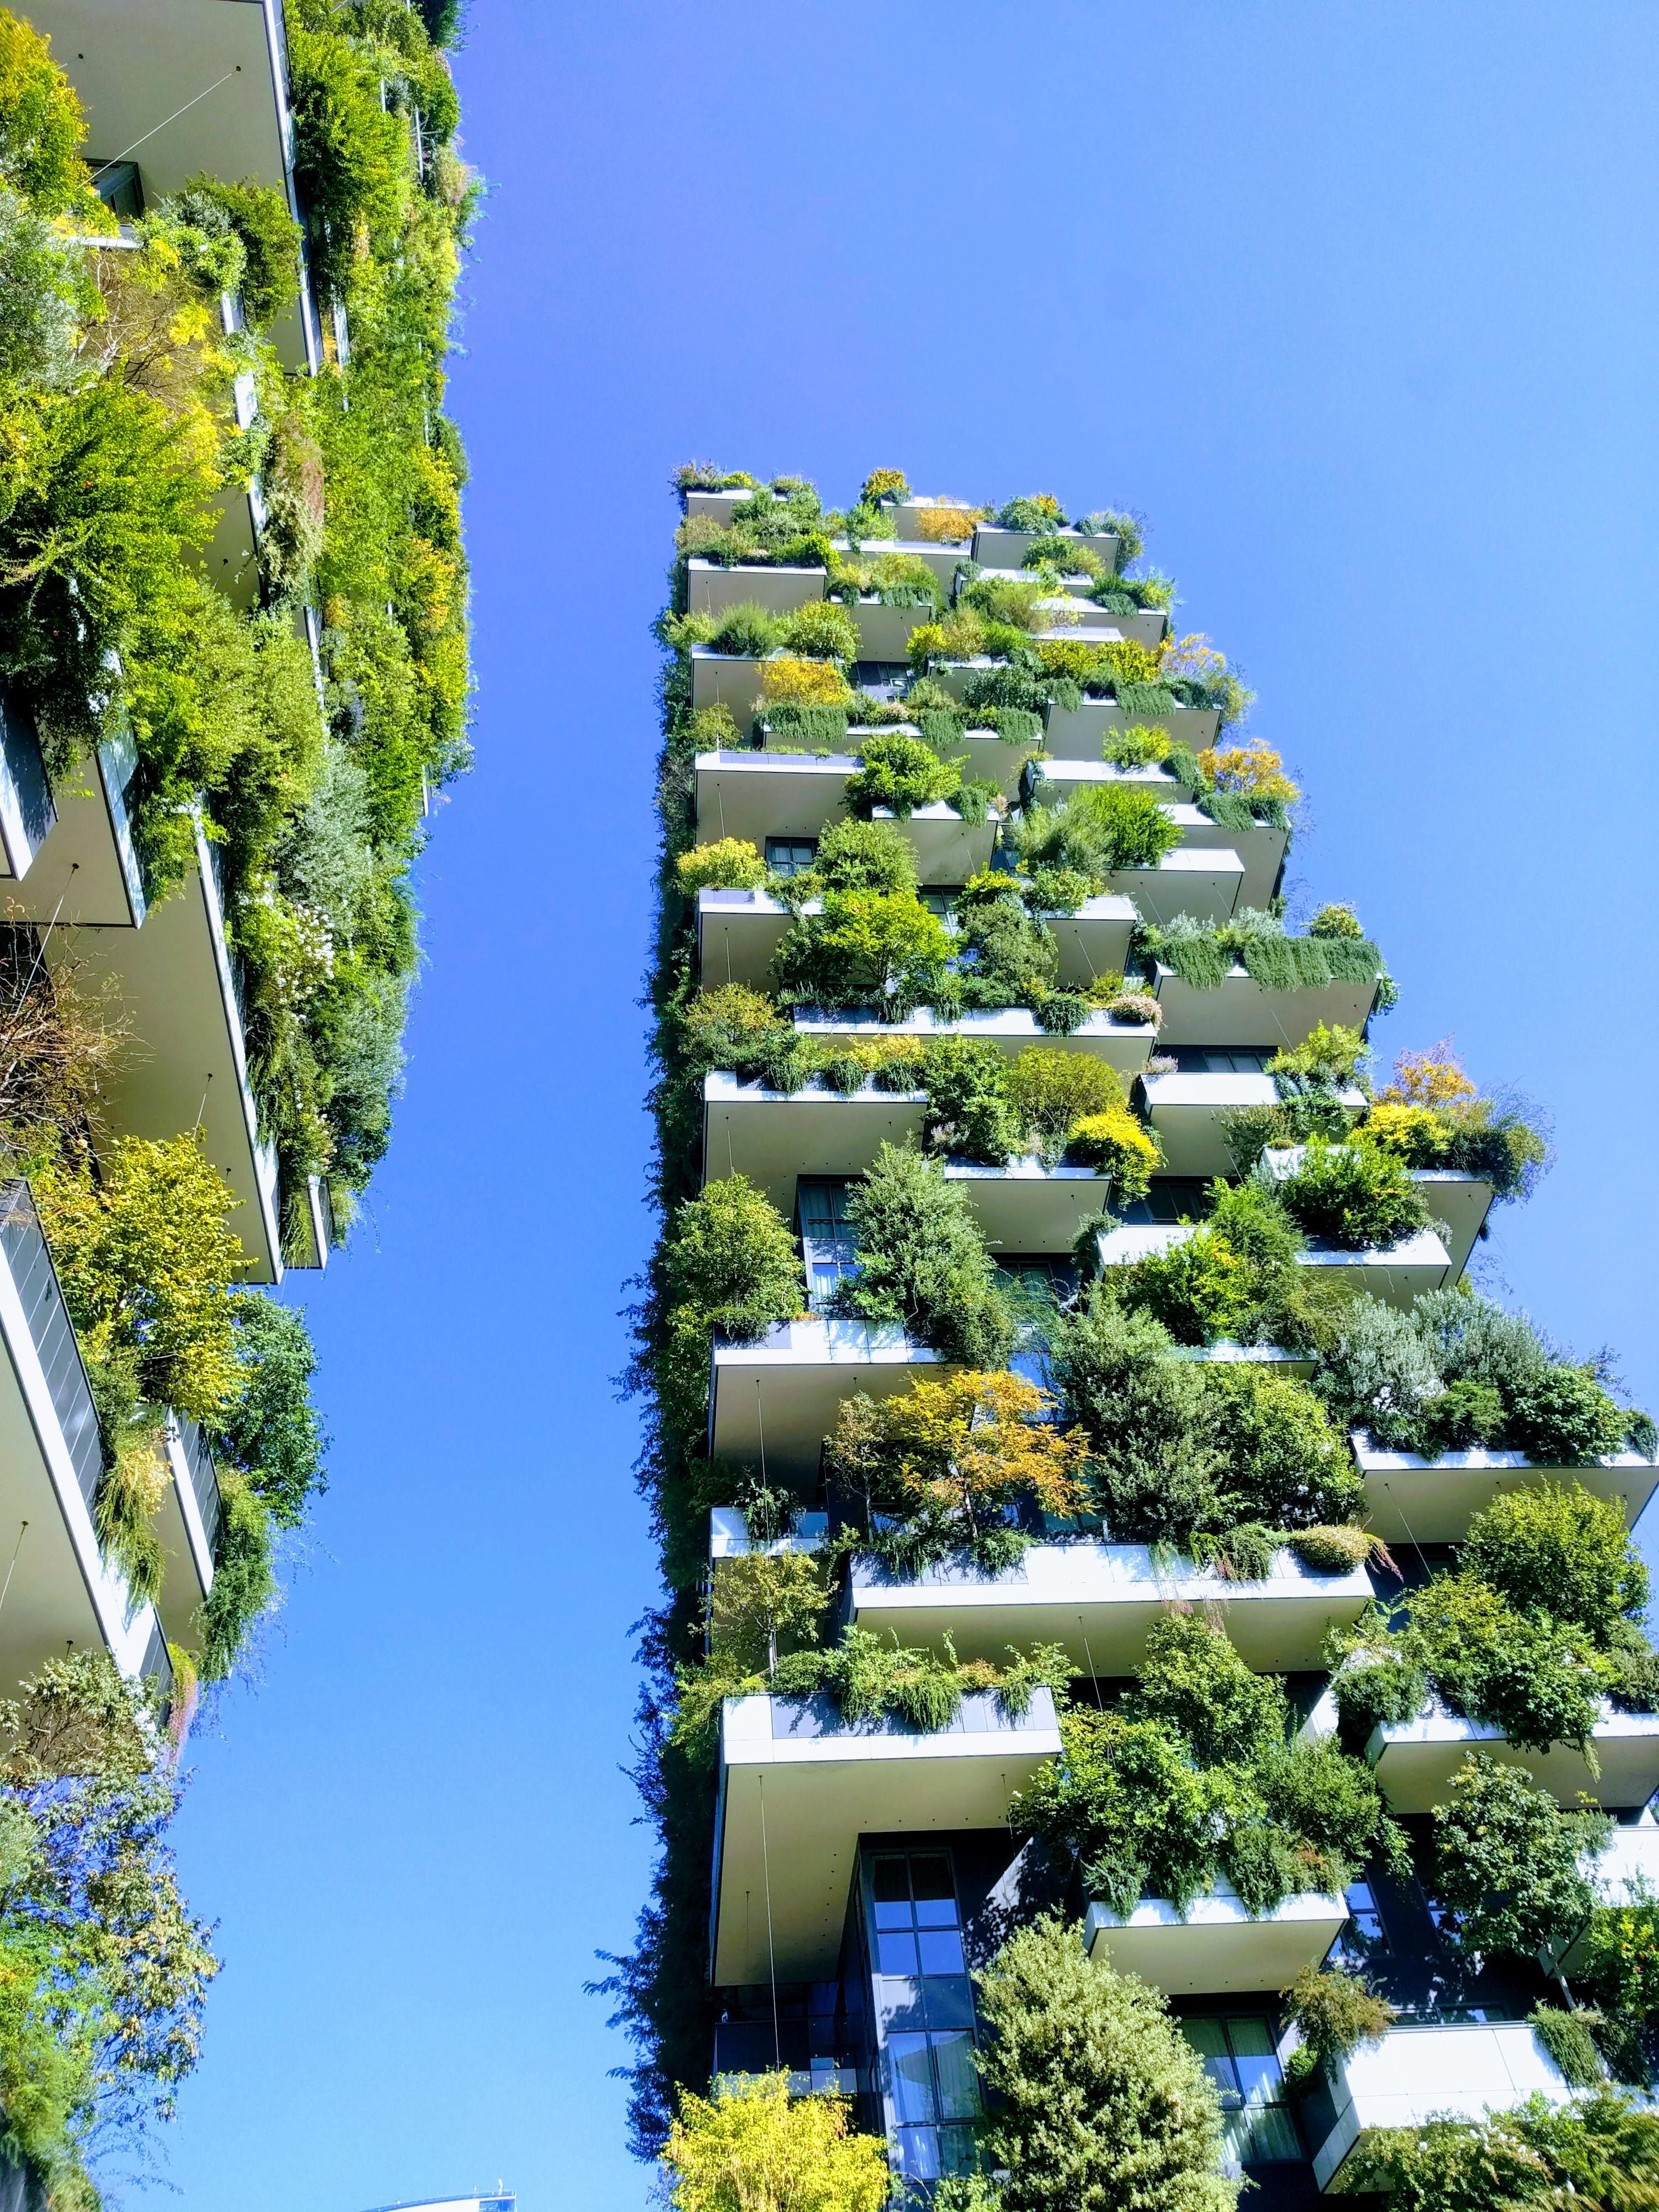 Bosco verticale (vertical forest) Milan Italy [3024x4032